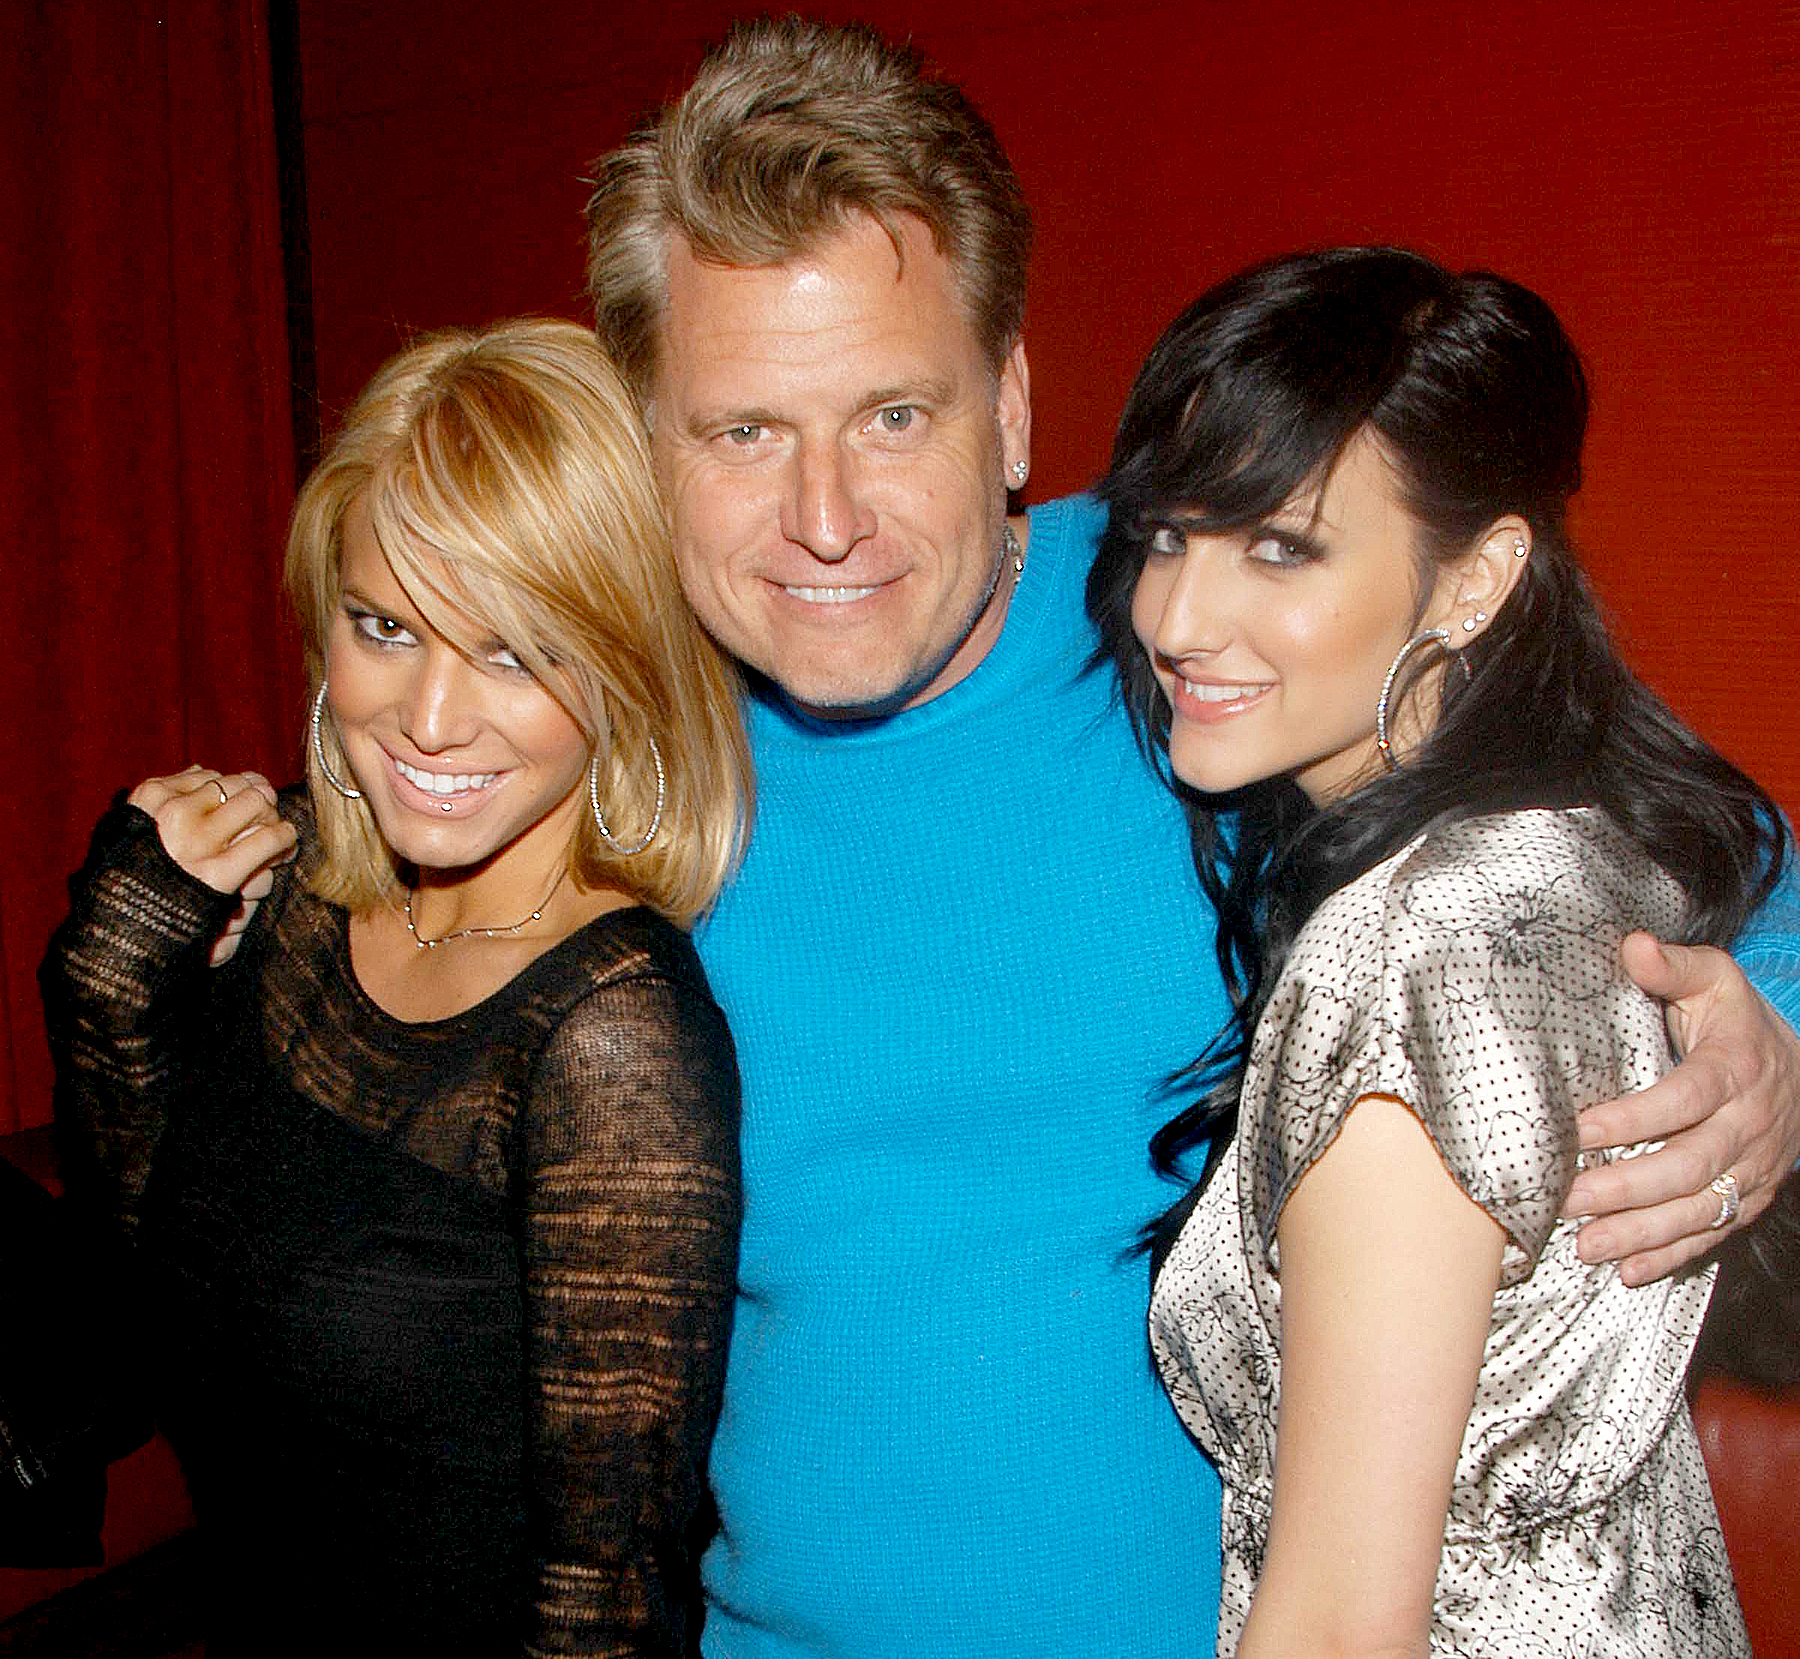 Jessica Simpson, Joe Simpson and Ashlee Simpson attend Guess Who Screening Party at Marquee on March 16, 2005 in New York City.